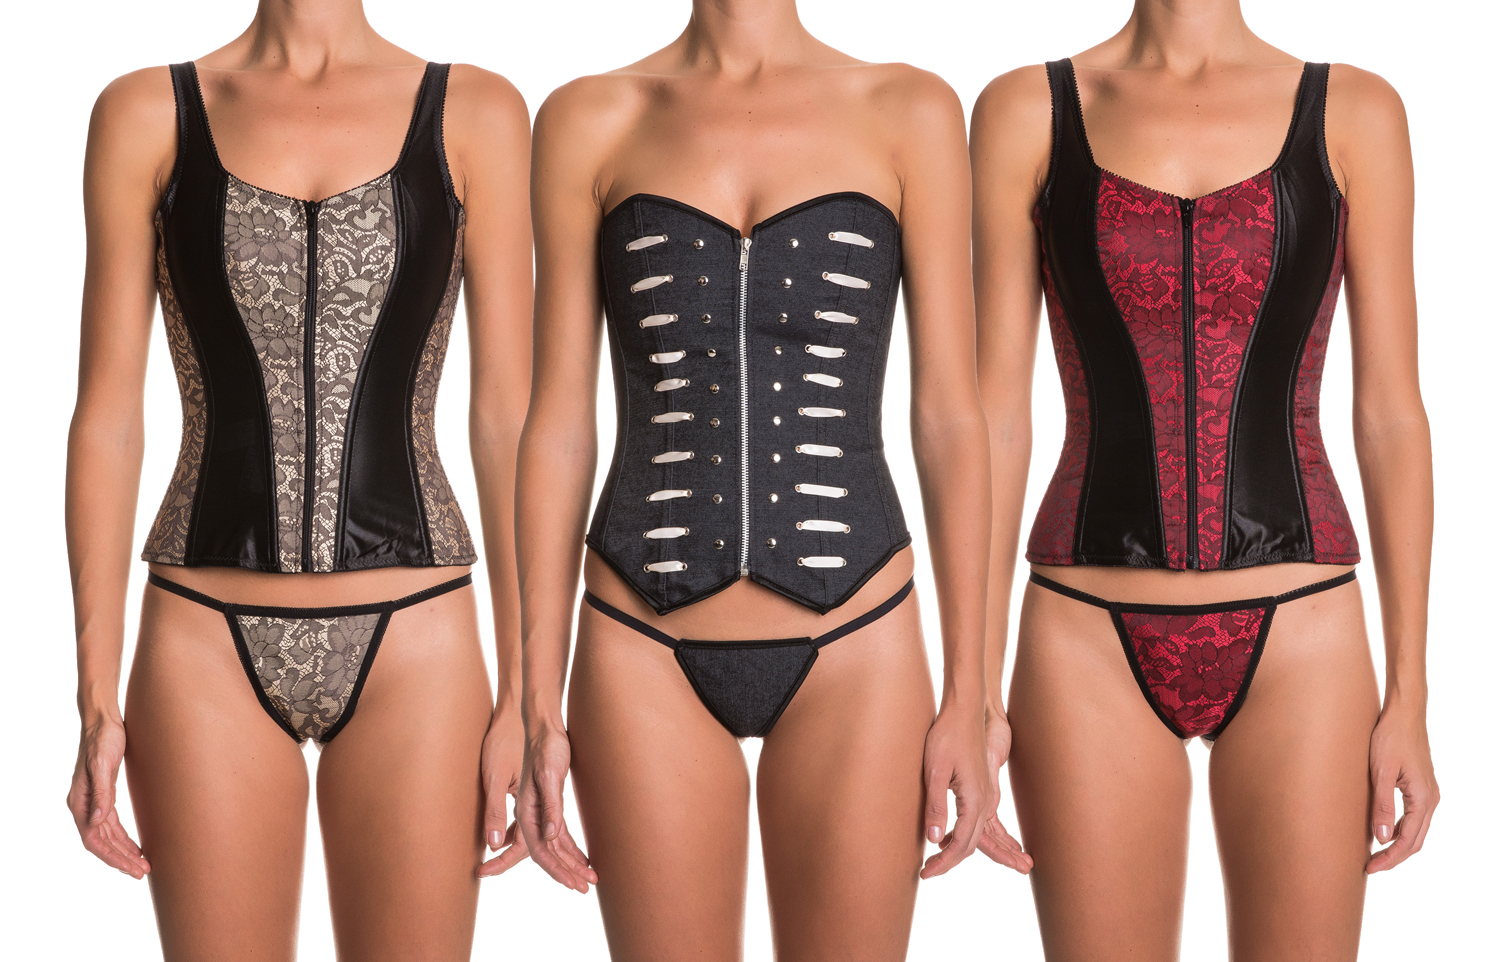 Intimax Zip up corsets